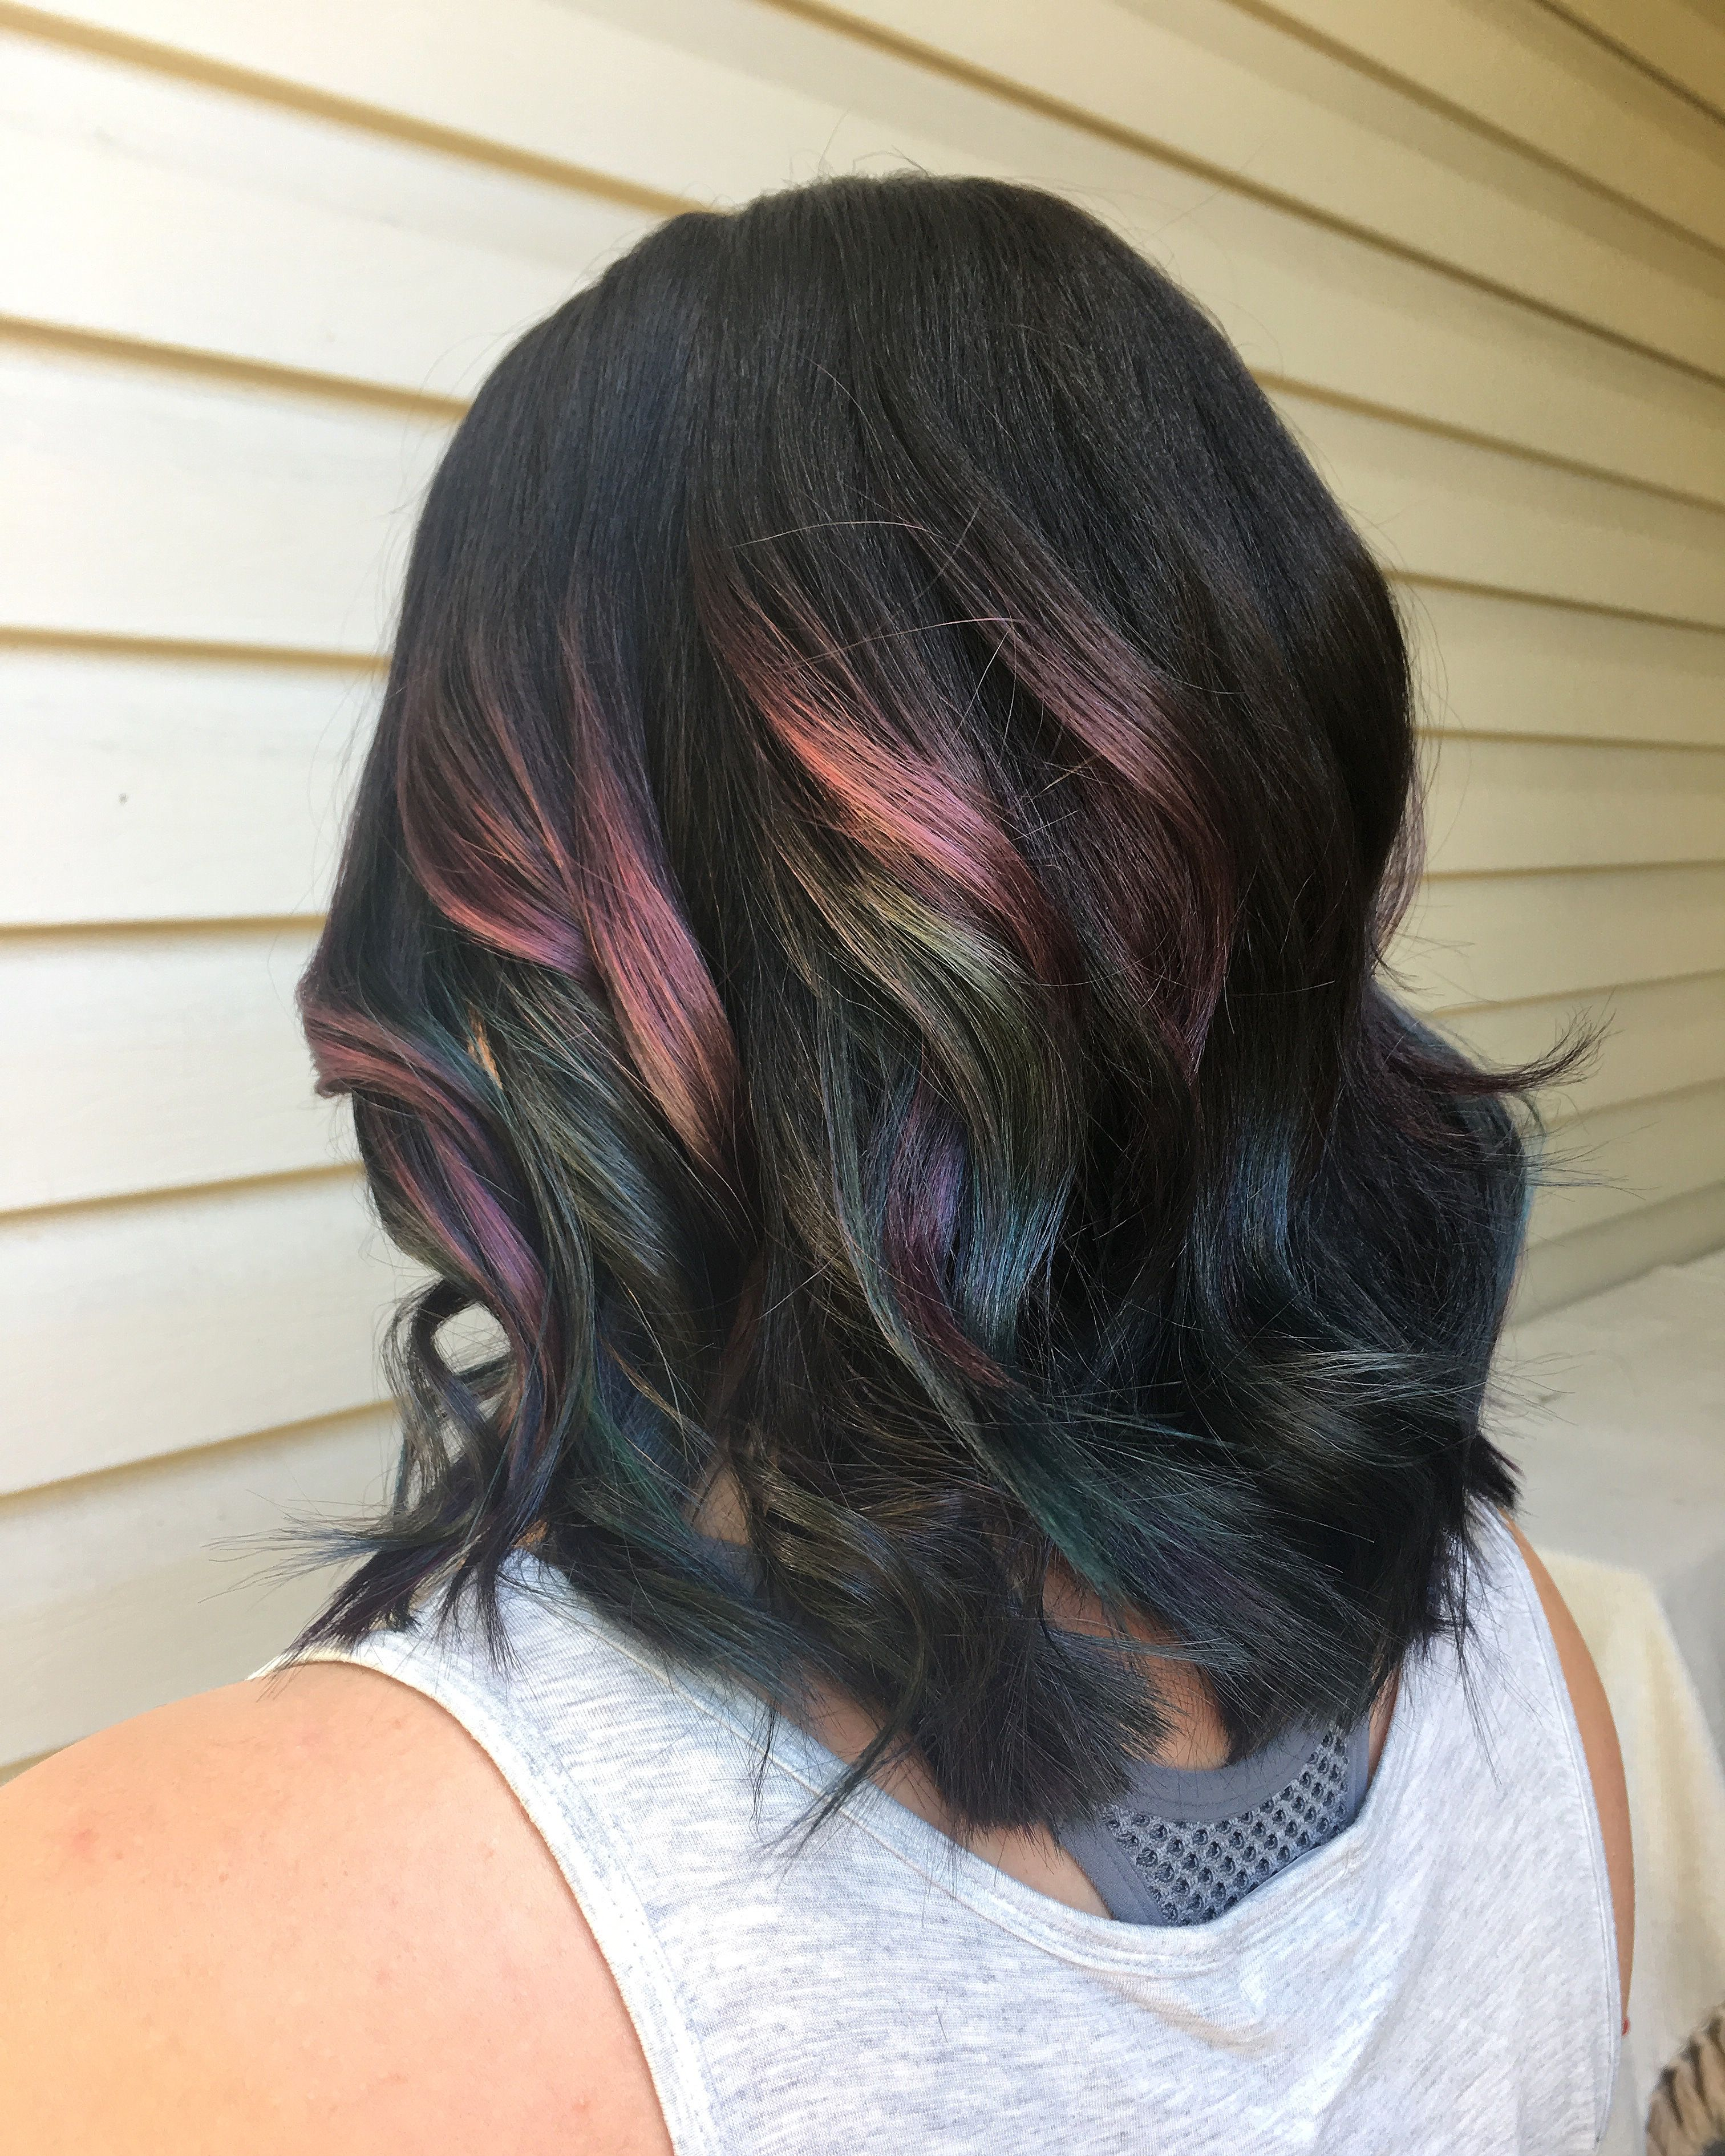 Oil slick balayage joico intensity colours sapphire blue green pink